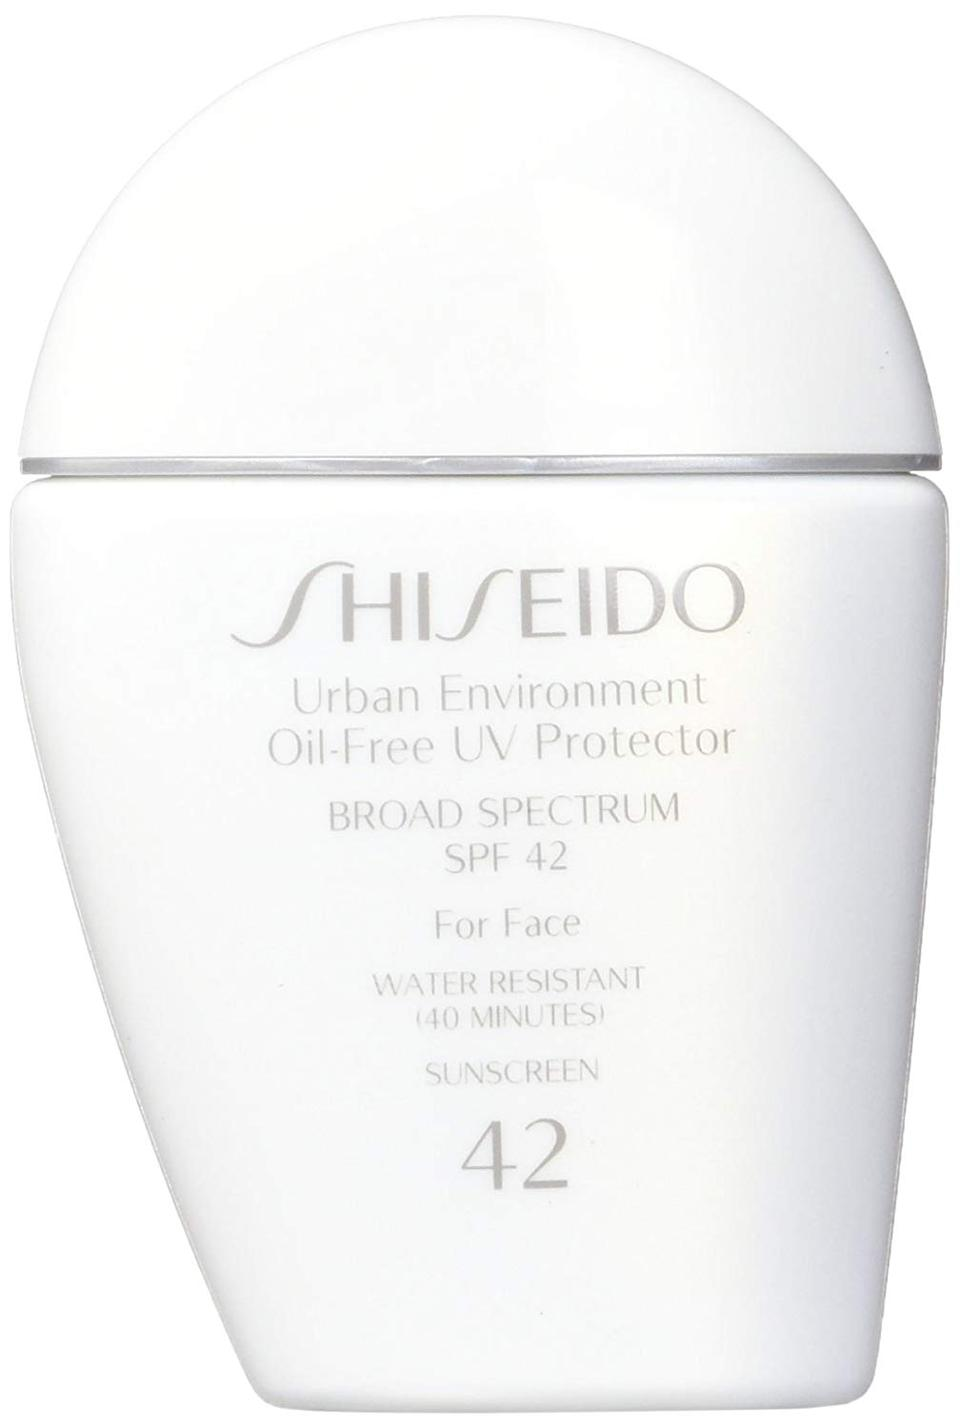 Shiseido Urban Environment Oil-free UV Protector SPF 42 Broad Spectrum for Face